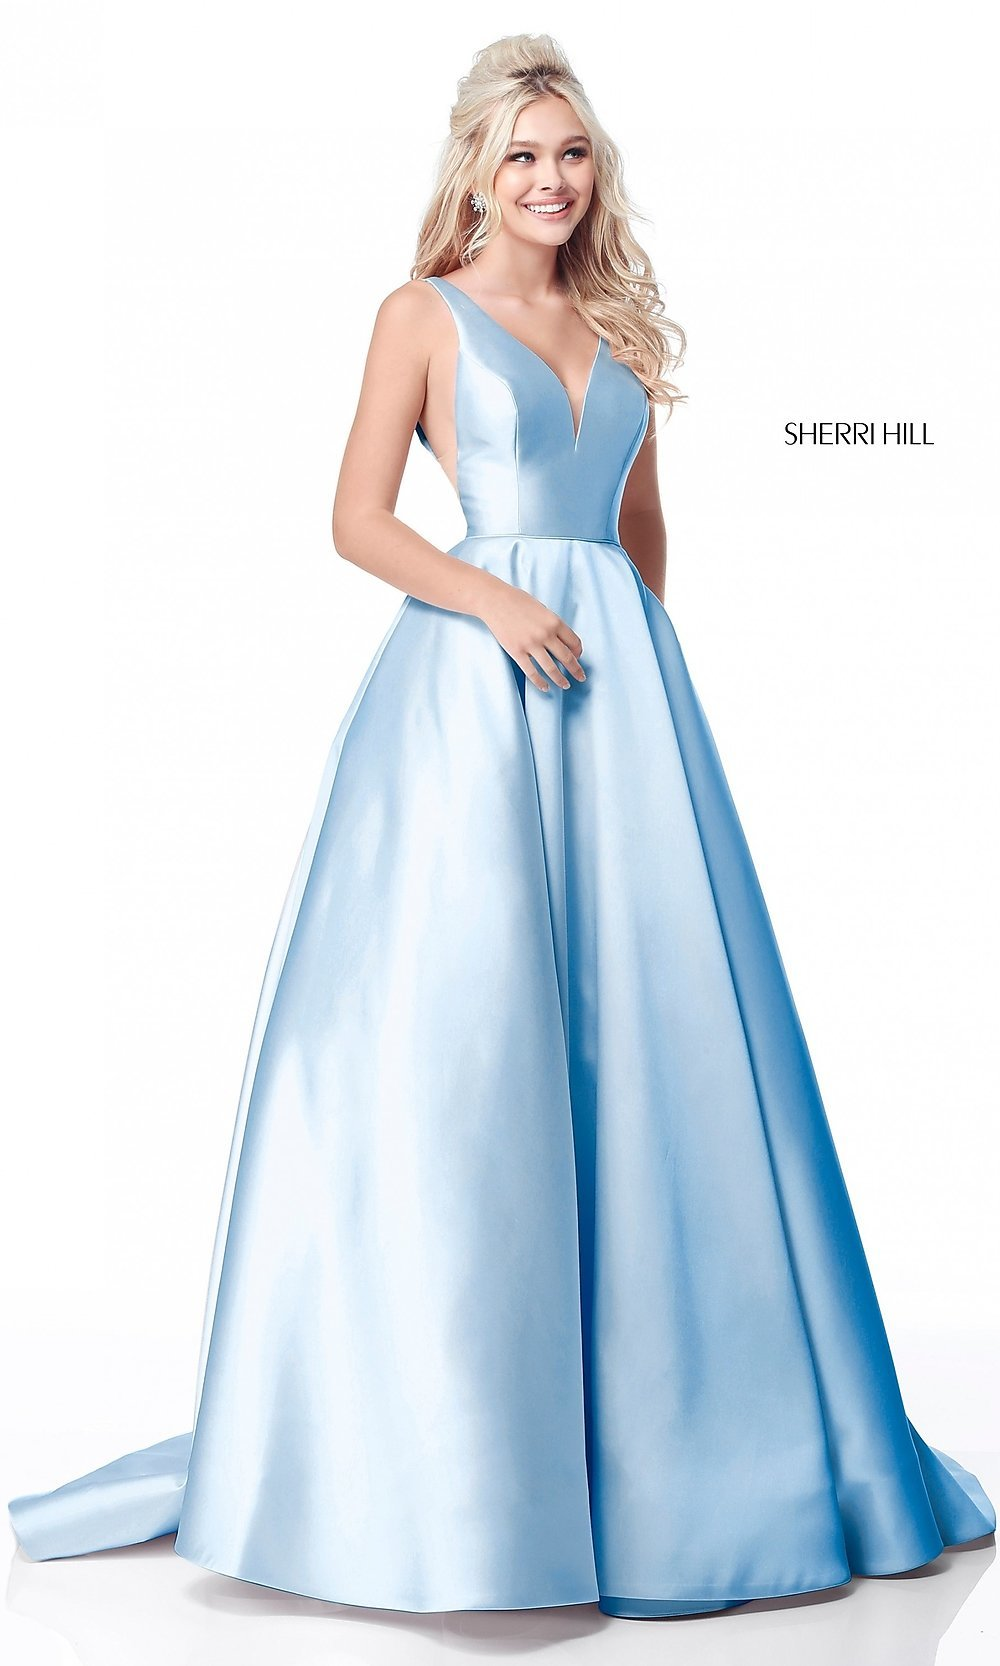 Sherri Hill Long Prom Dress With Pockets Promgirl